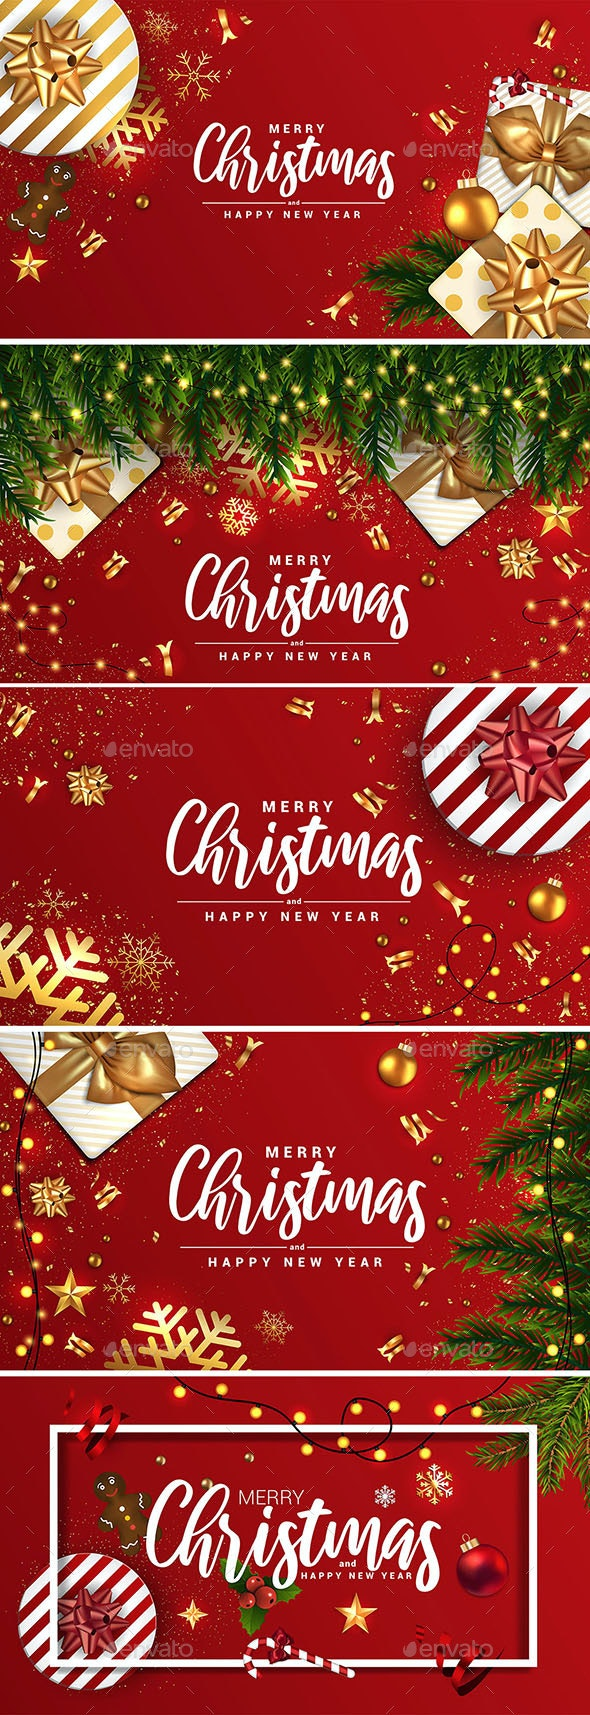 Merry Christmas and Happy New Year Banners - Christmas Seasons/Holidays